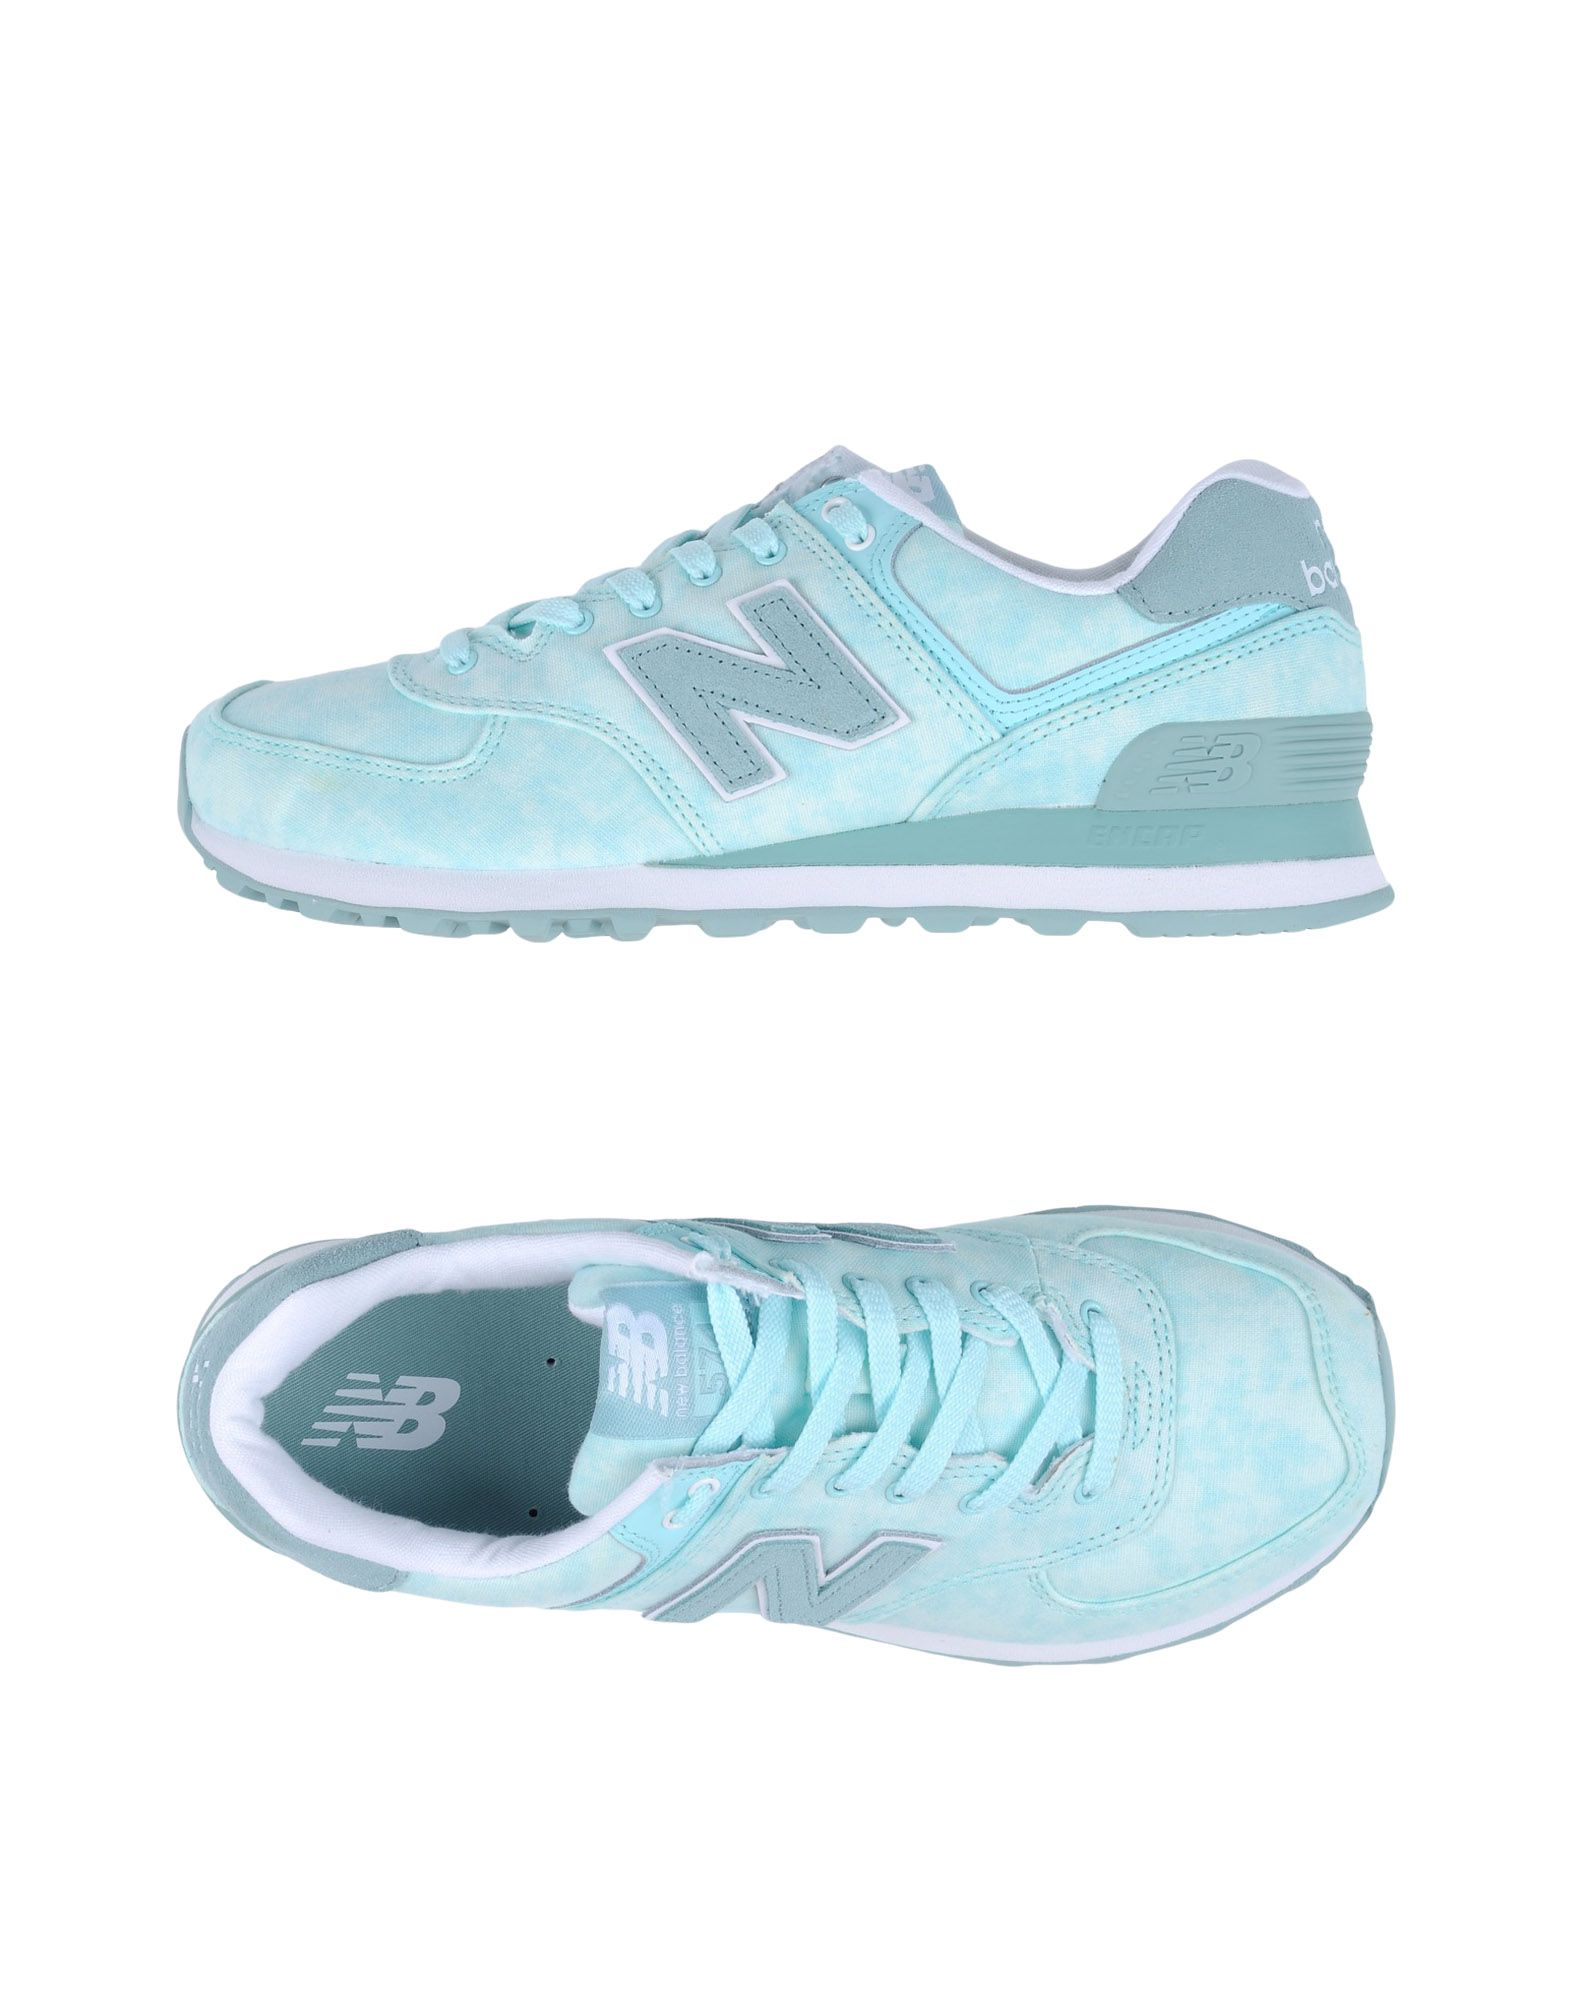 Sneakers New Balance 574 Textile - Femme - Sneakers New Balance sur